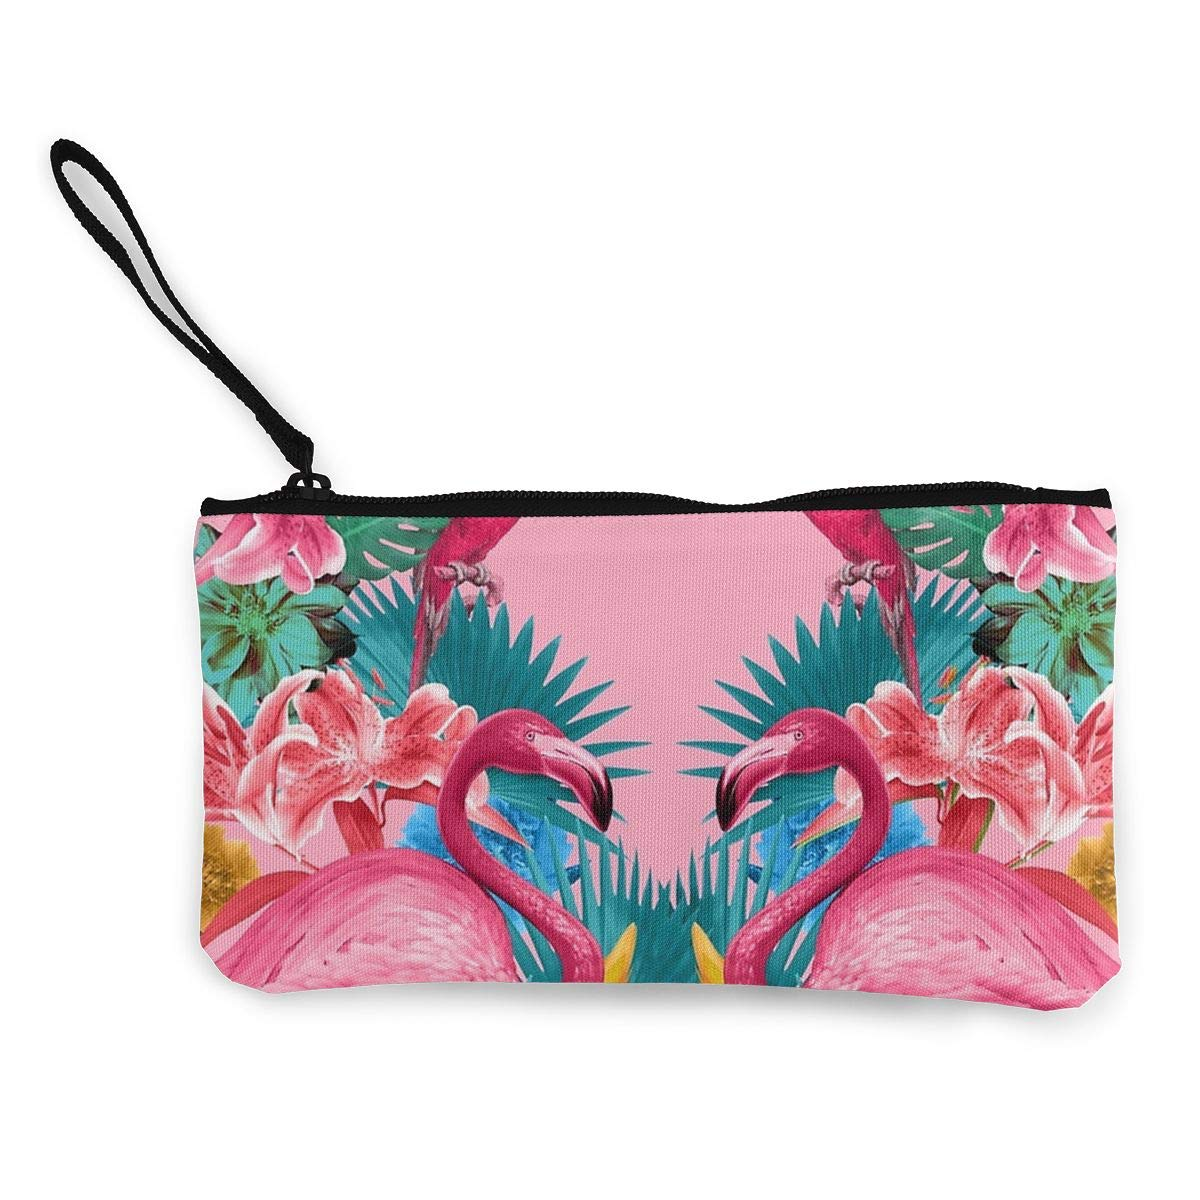 3 Womens Canvas Coin Wallet Cellphone Clutch Purse With Wrist Strap Pink Flamingo Pattern Zipper Small Purse Wallets